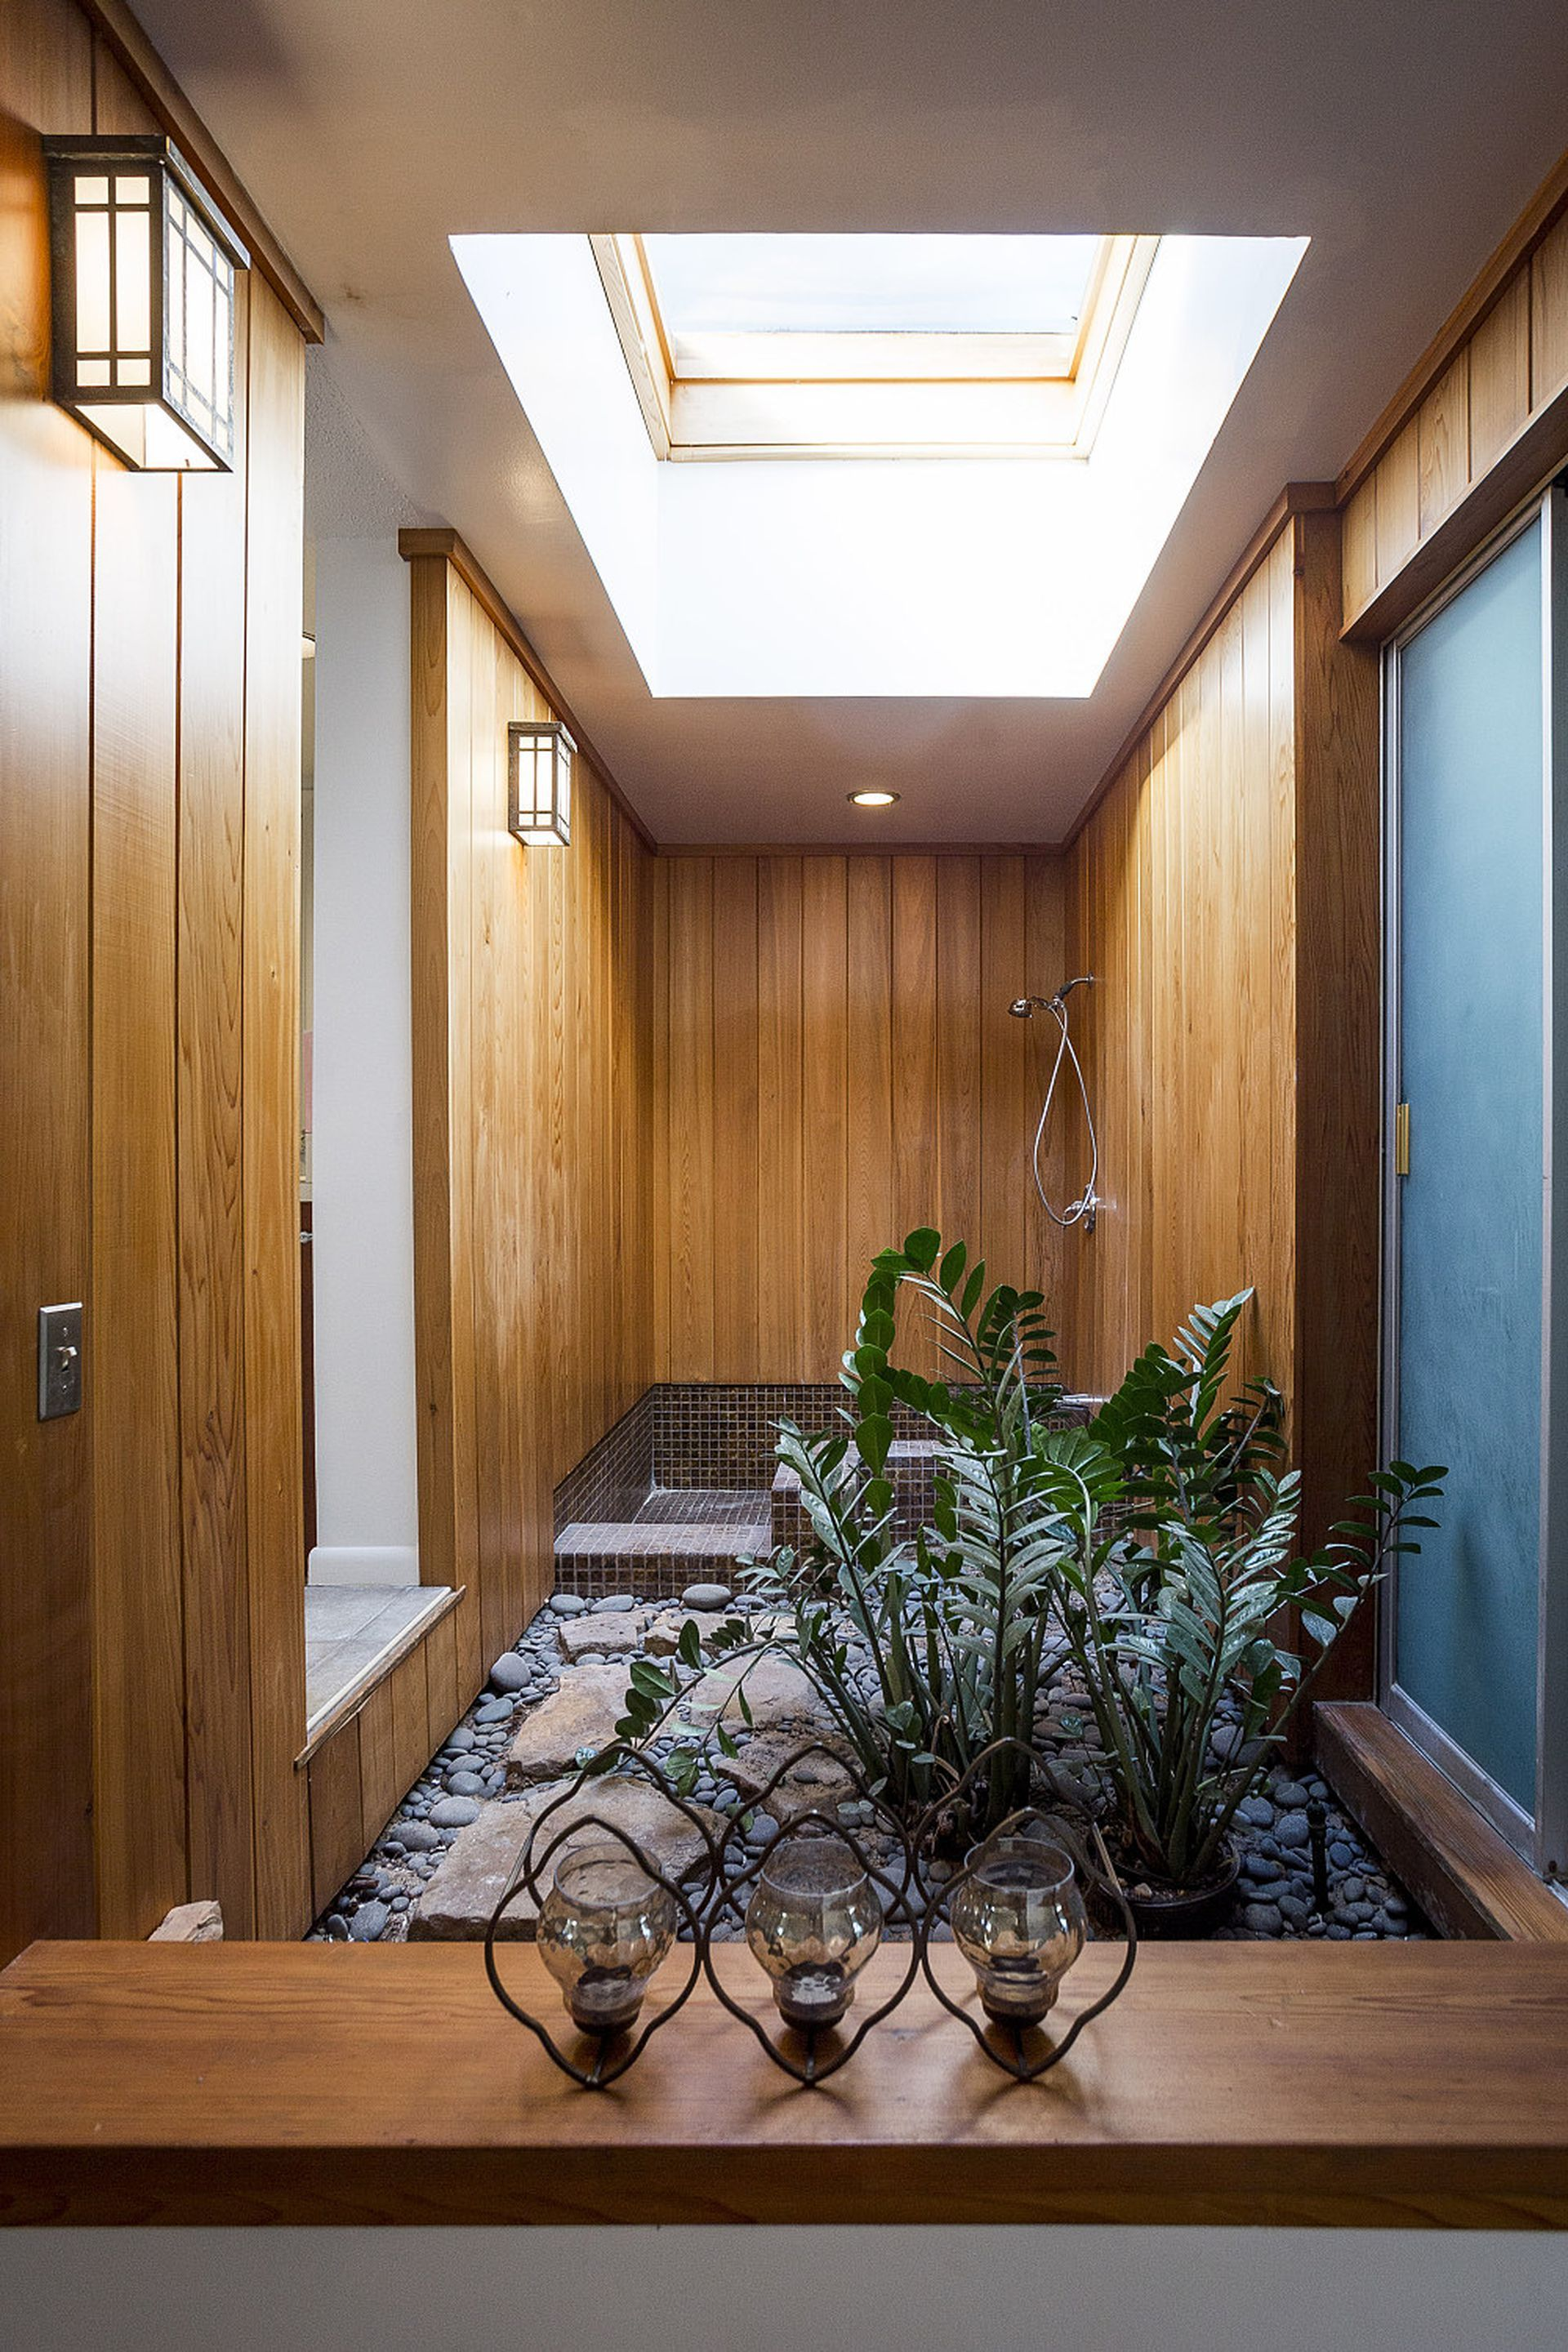 Japanese Inspired 60S Home With Koi Pond Asks $895K  Curbed